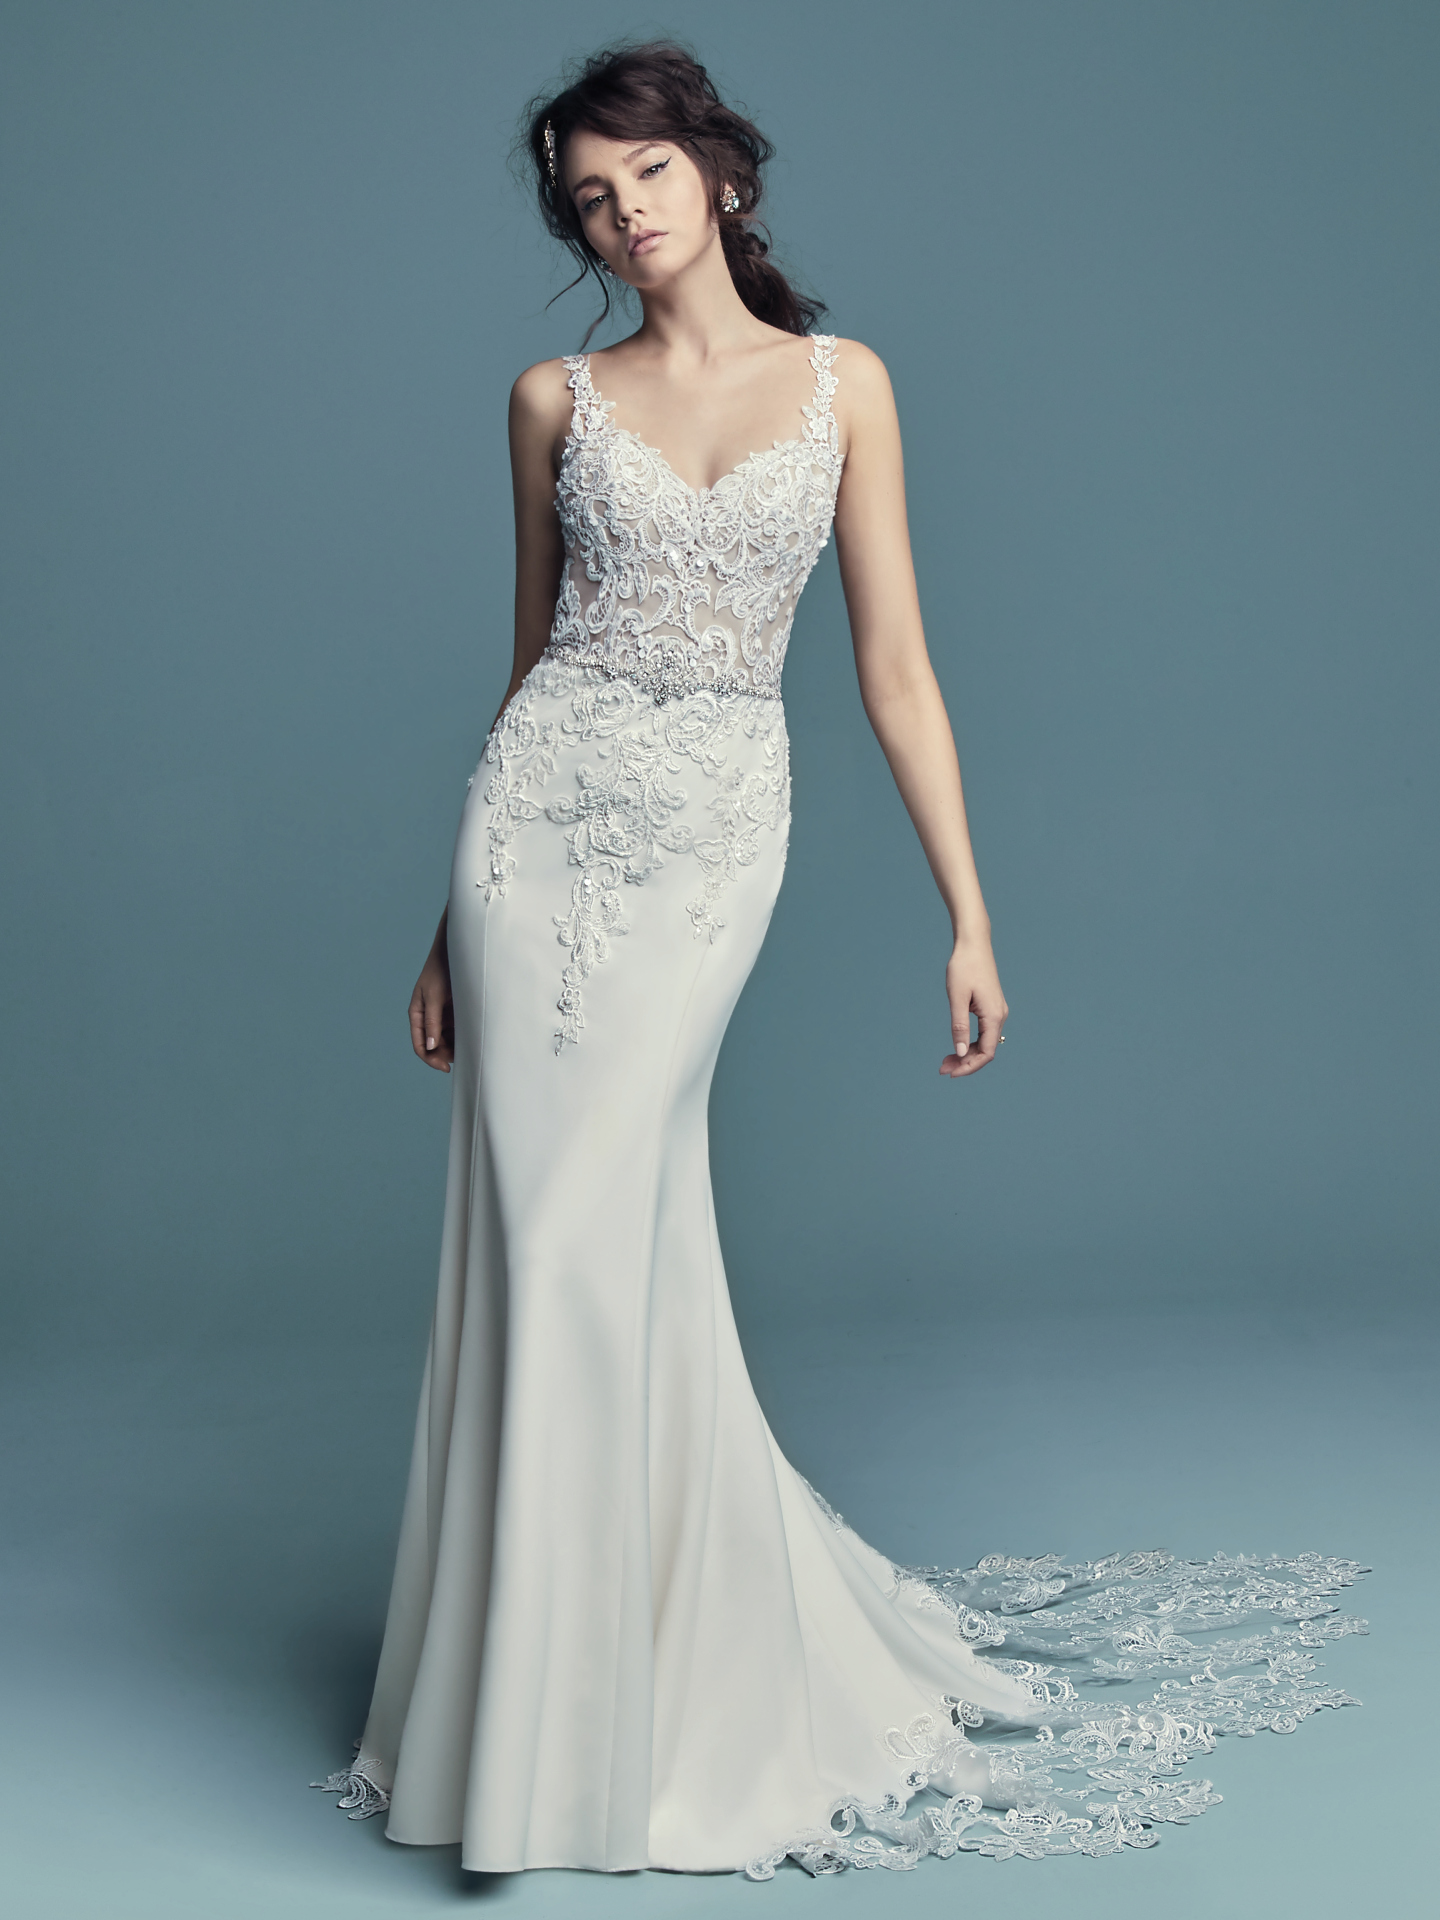 15 Gorgeous Statement-Back Gowns for the Stylish Bride - Alaina wedding dress with statement back by Maggie Sottero